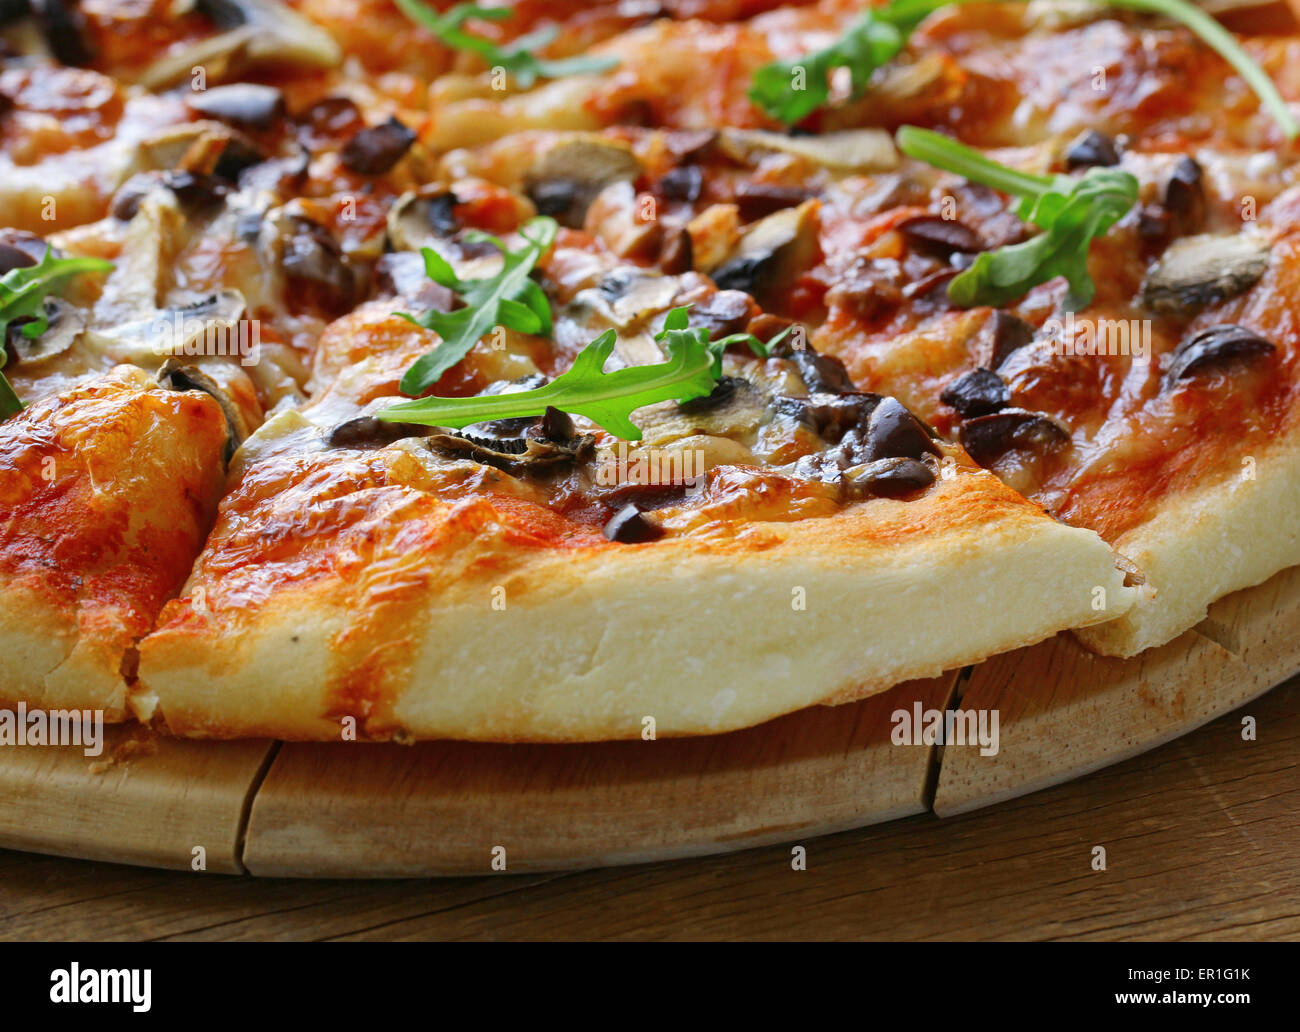 Traditional Italian food pizza with tomato sauce and cheese - Stock Image